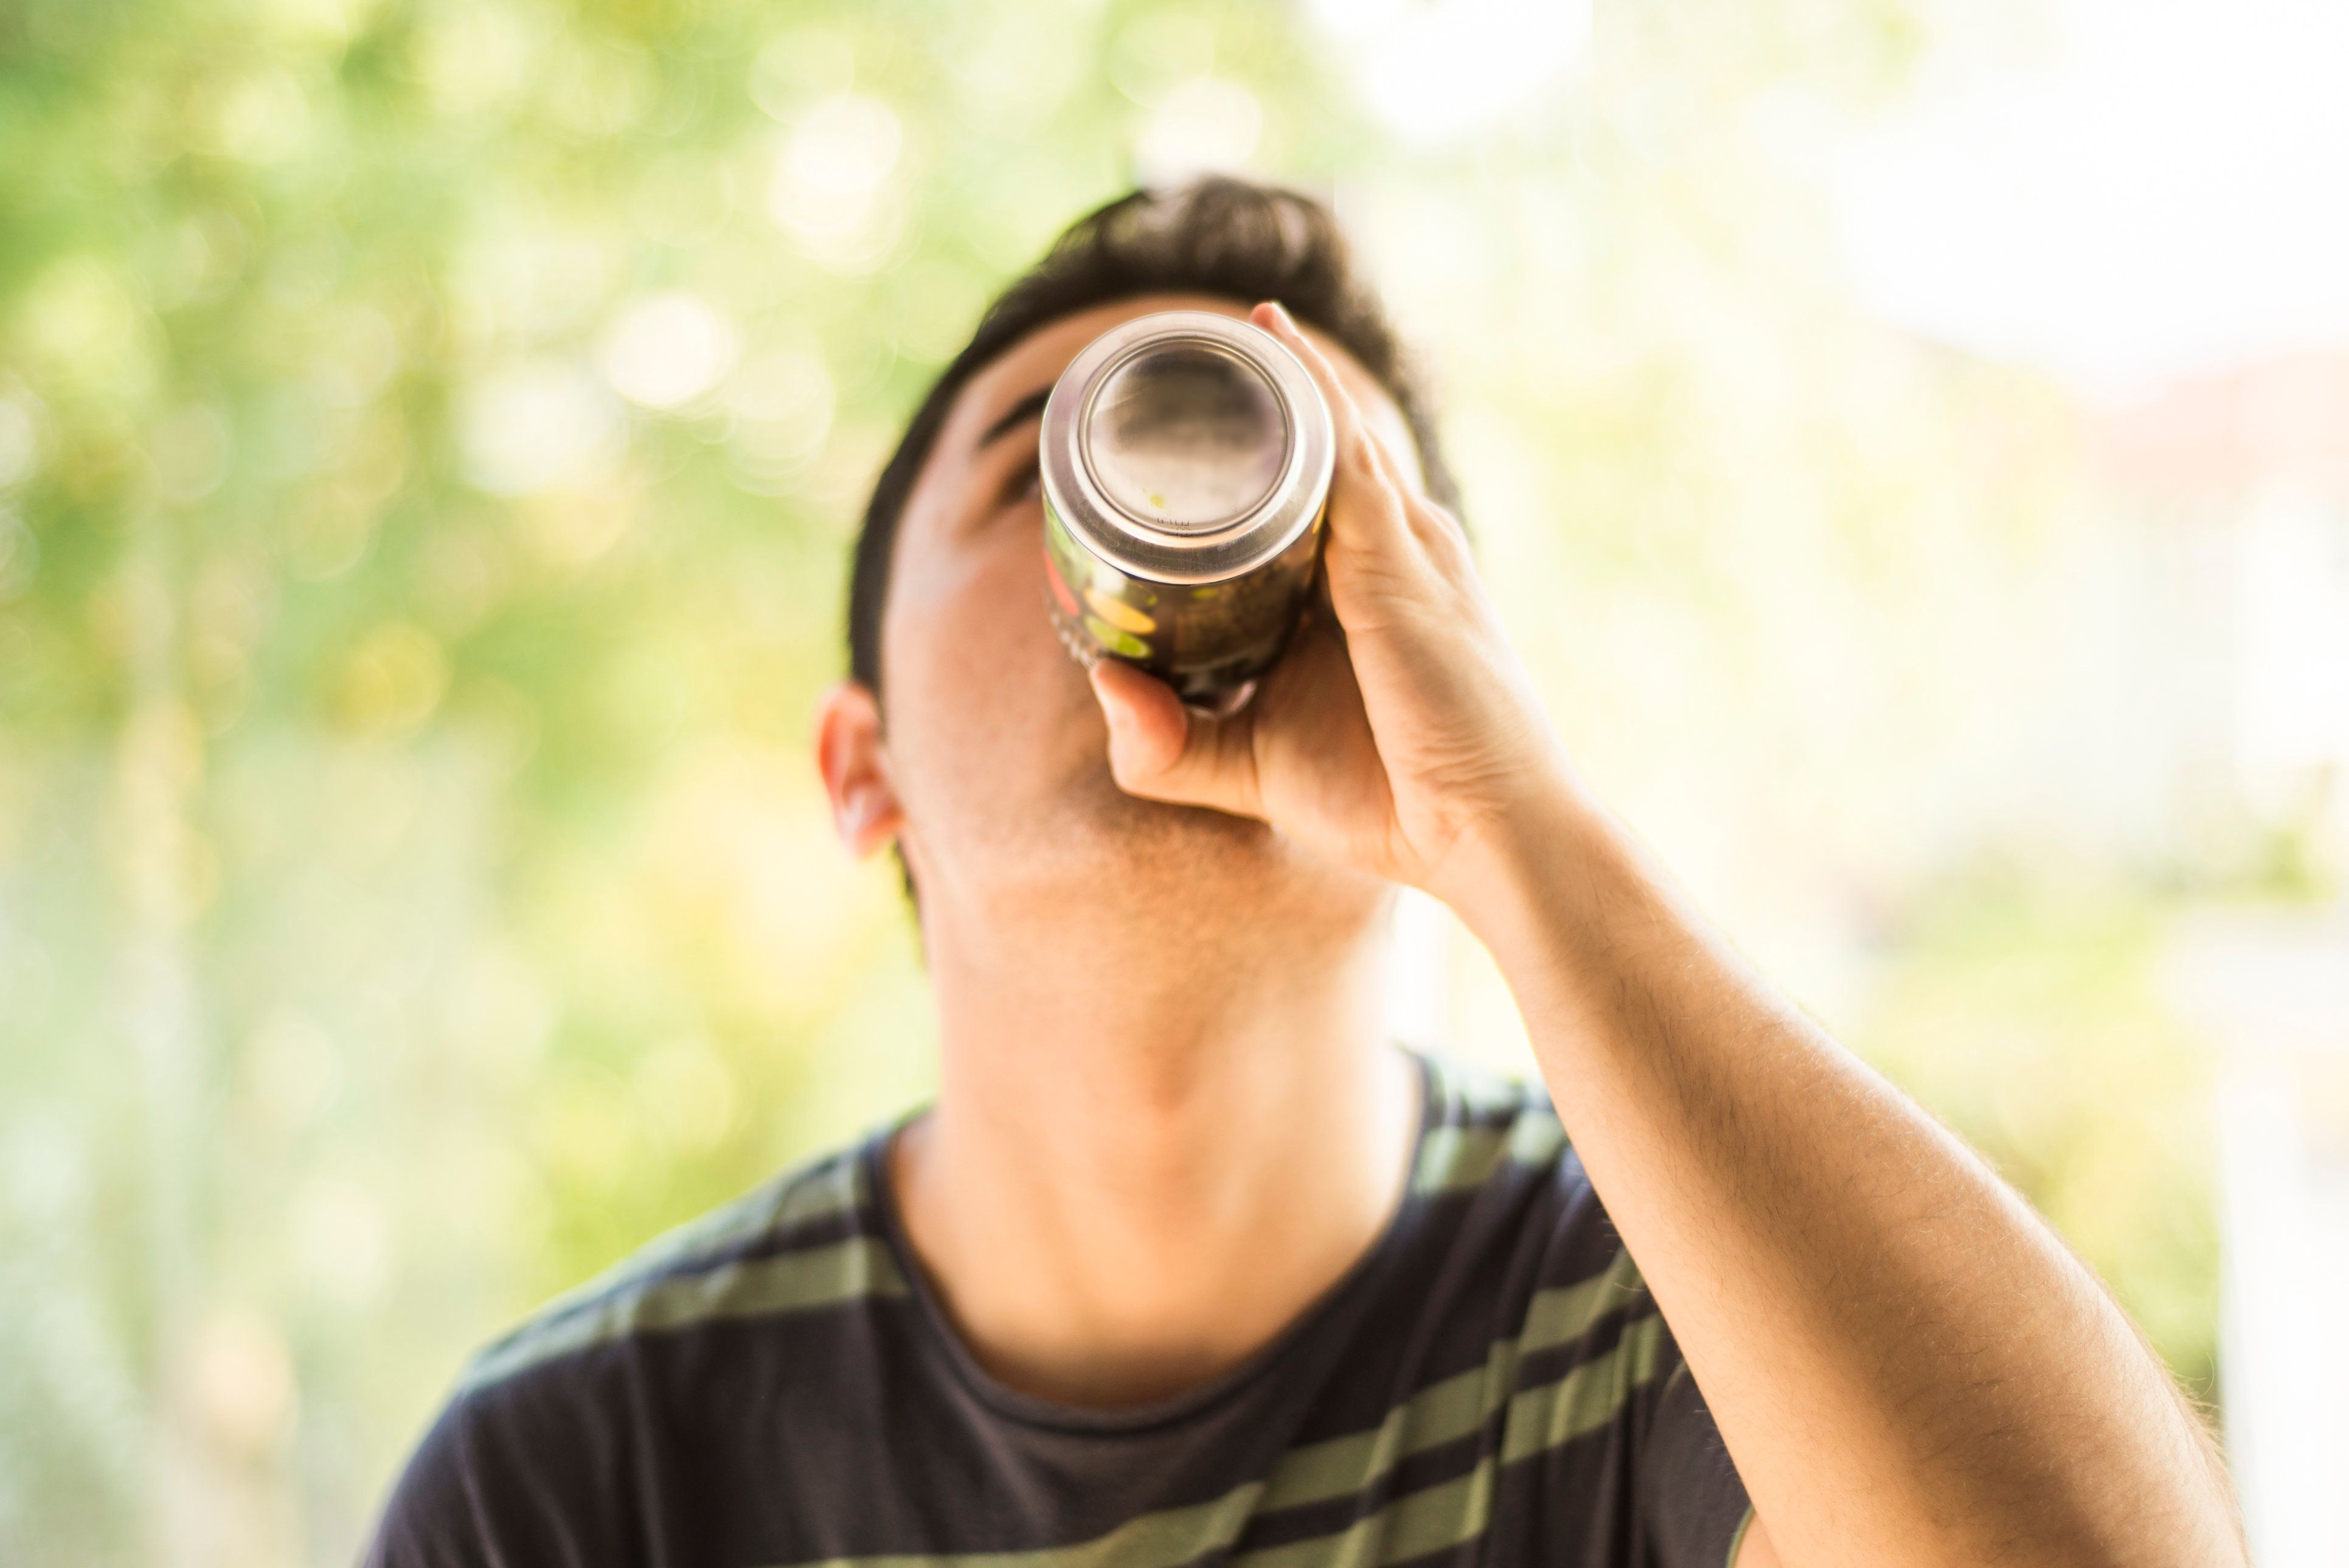 A young man drinking a can.